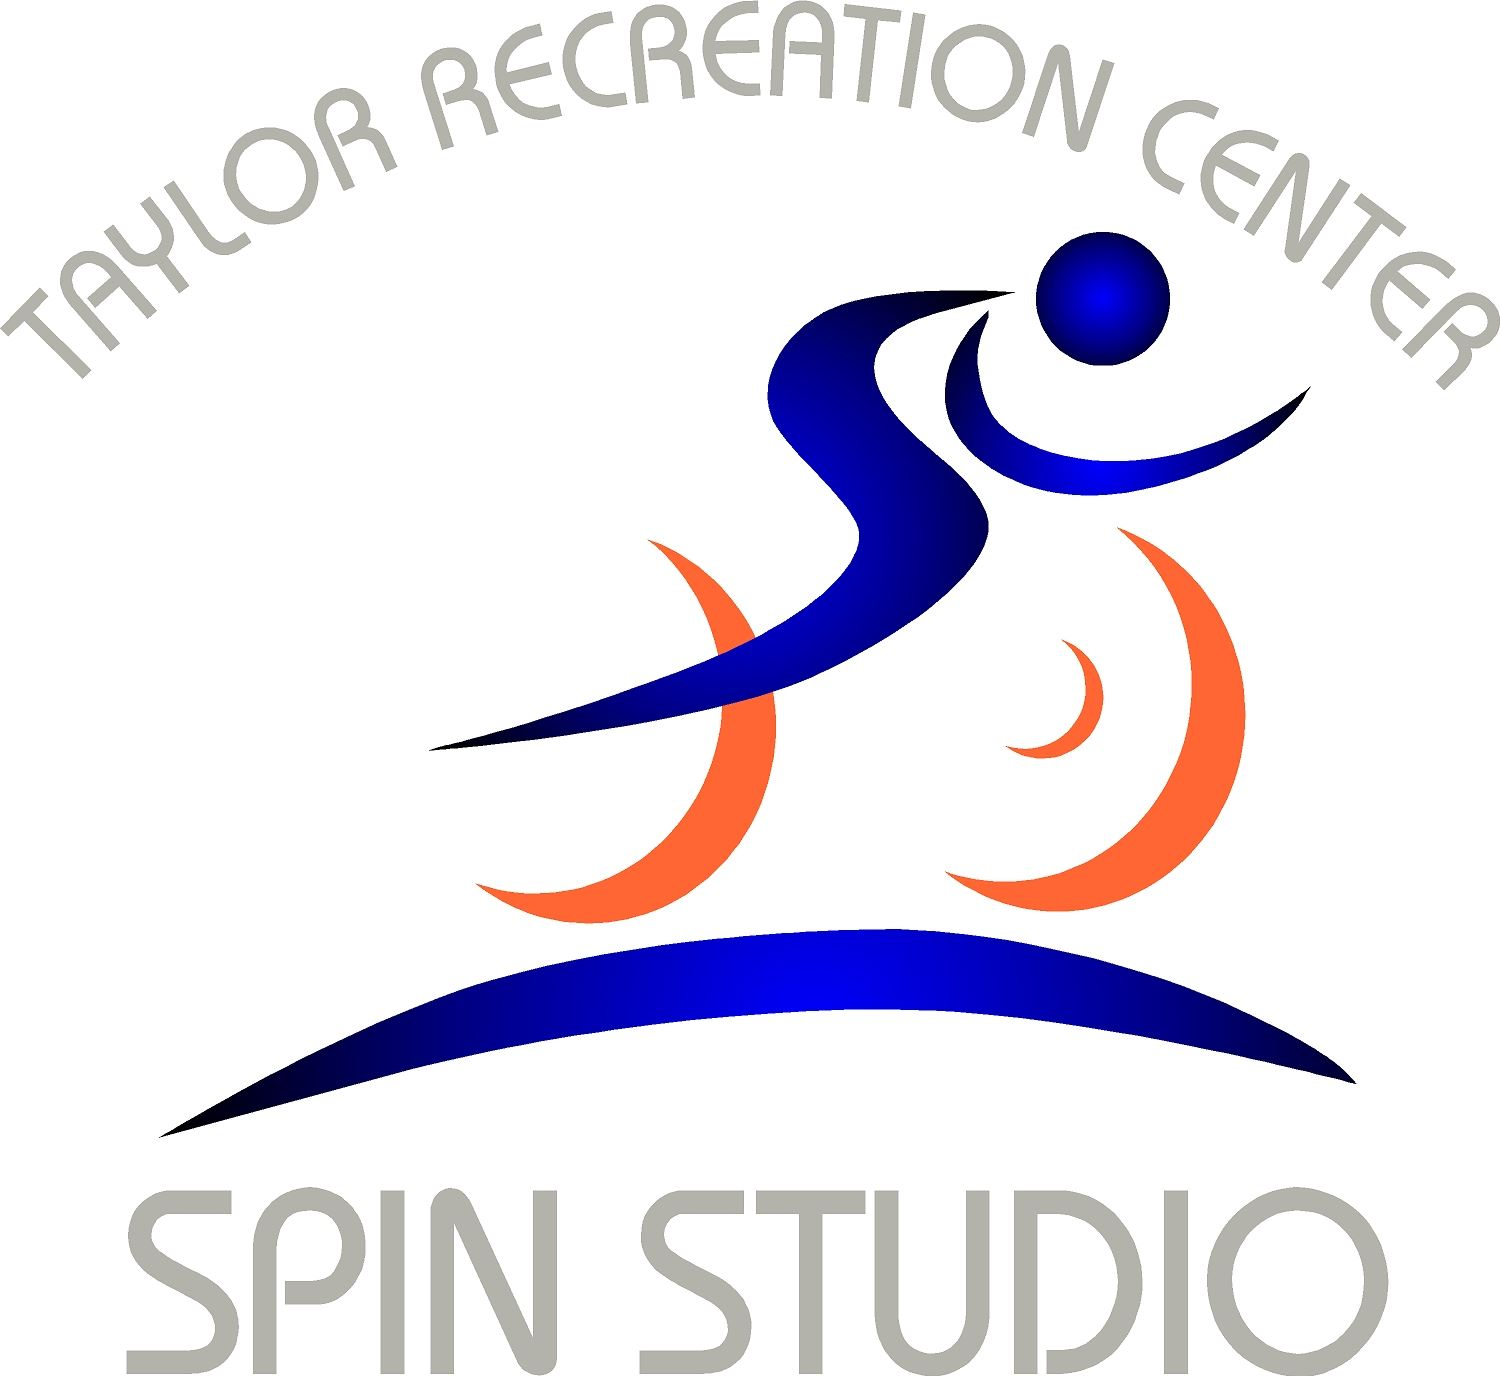 Taylor Recreation Center Spin Studio